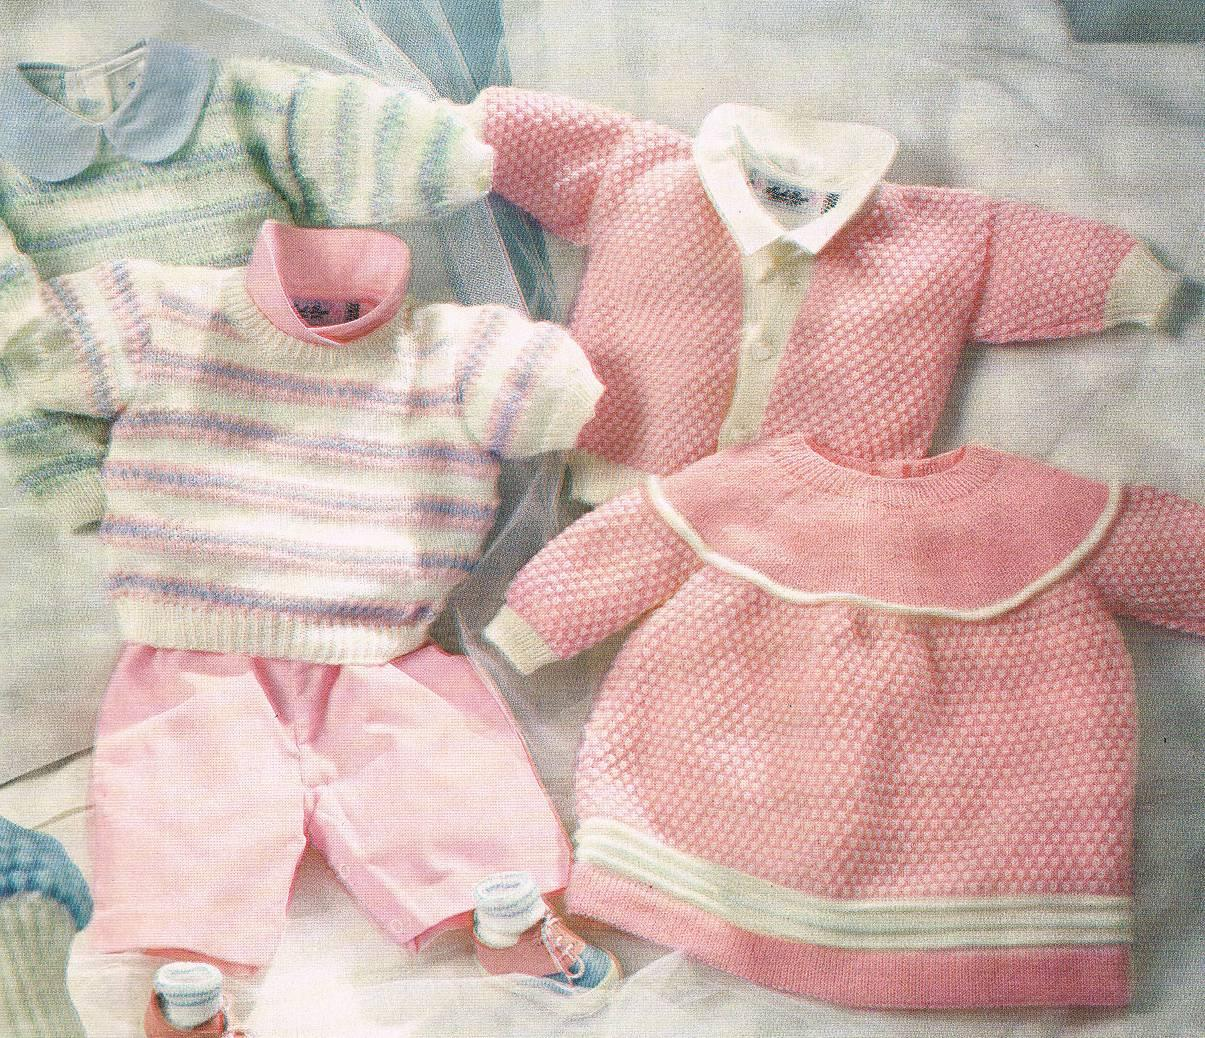 Baby Clothes Knitting Patterns : Phildar mailles baby clothes knitting pattern booklet